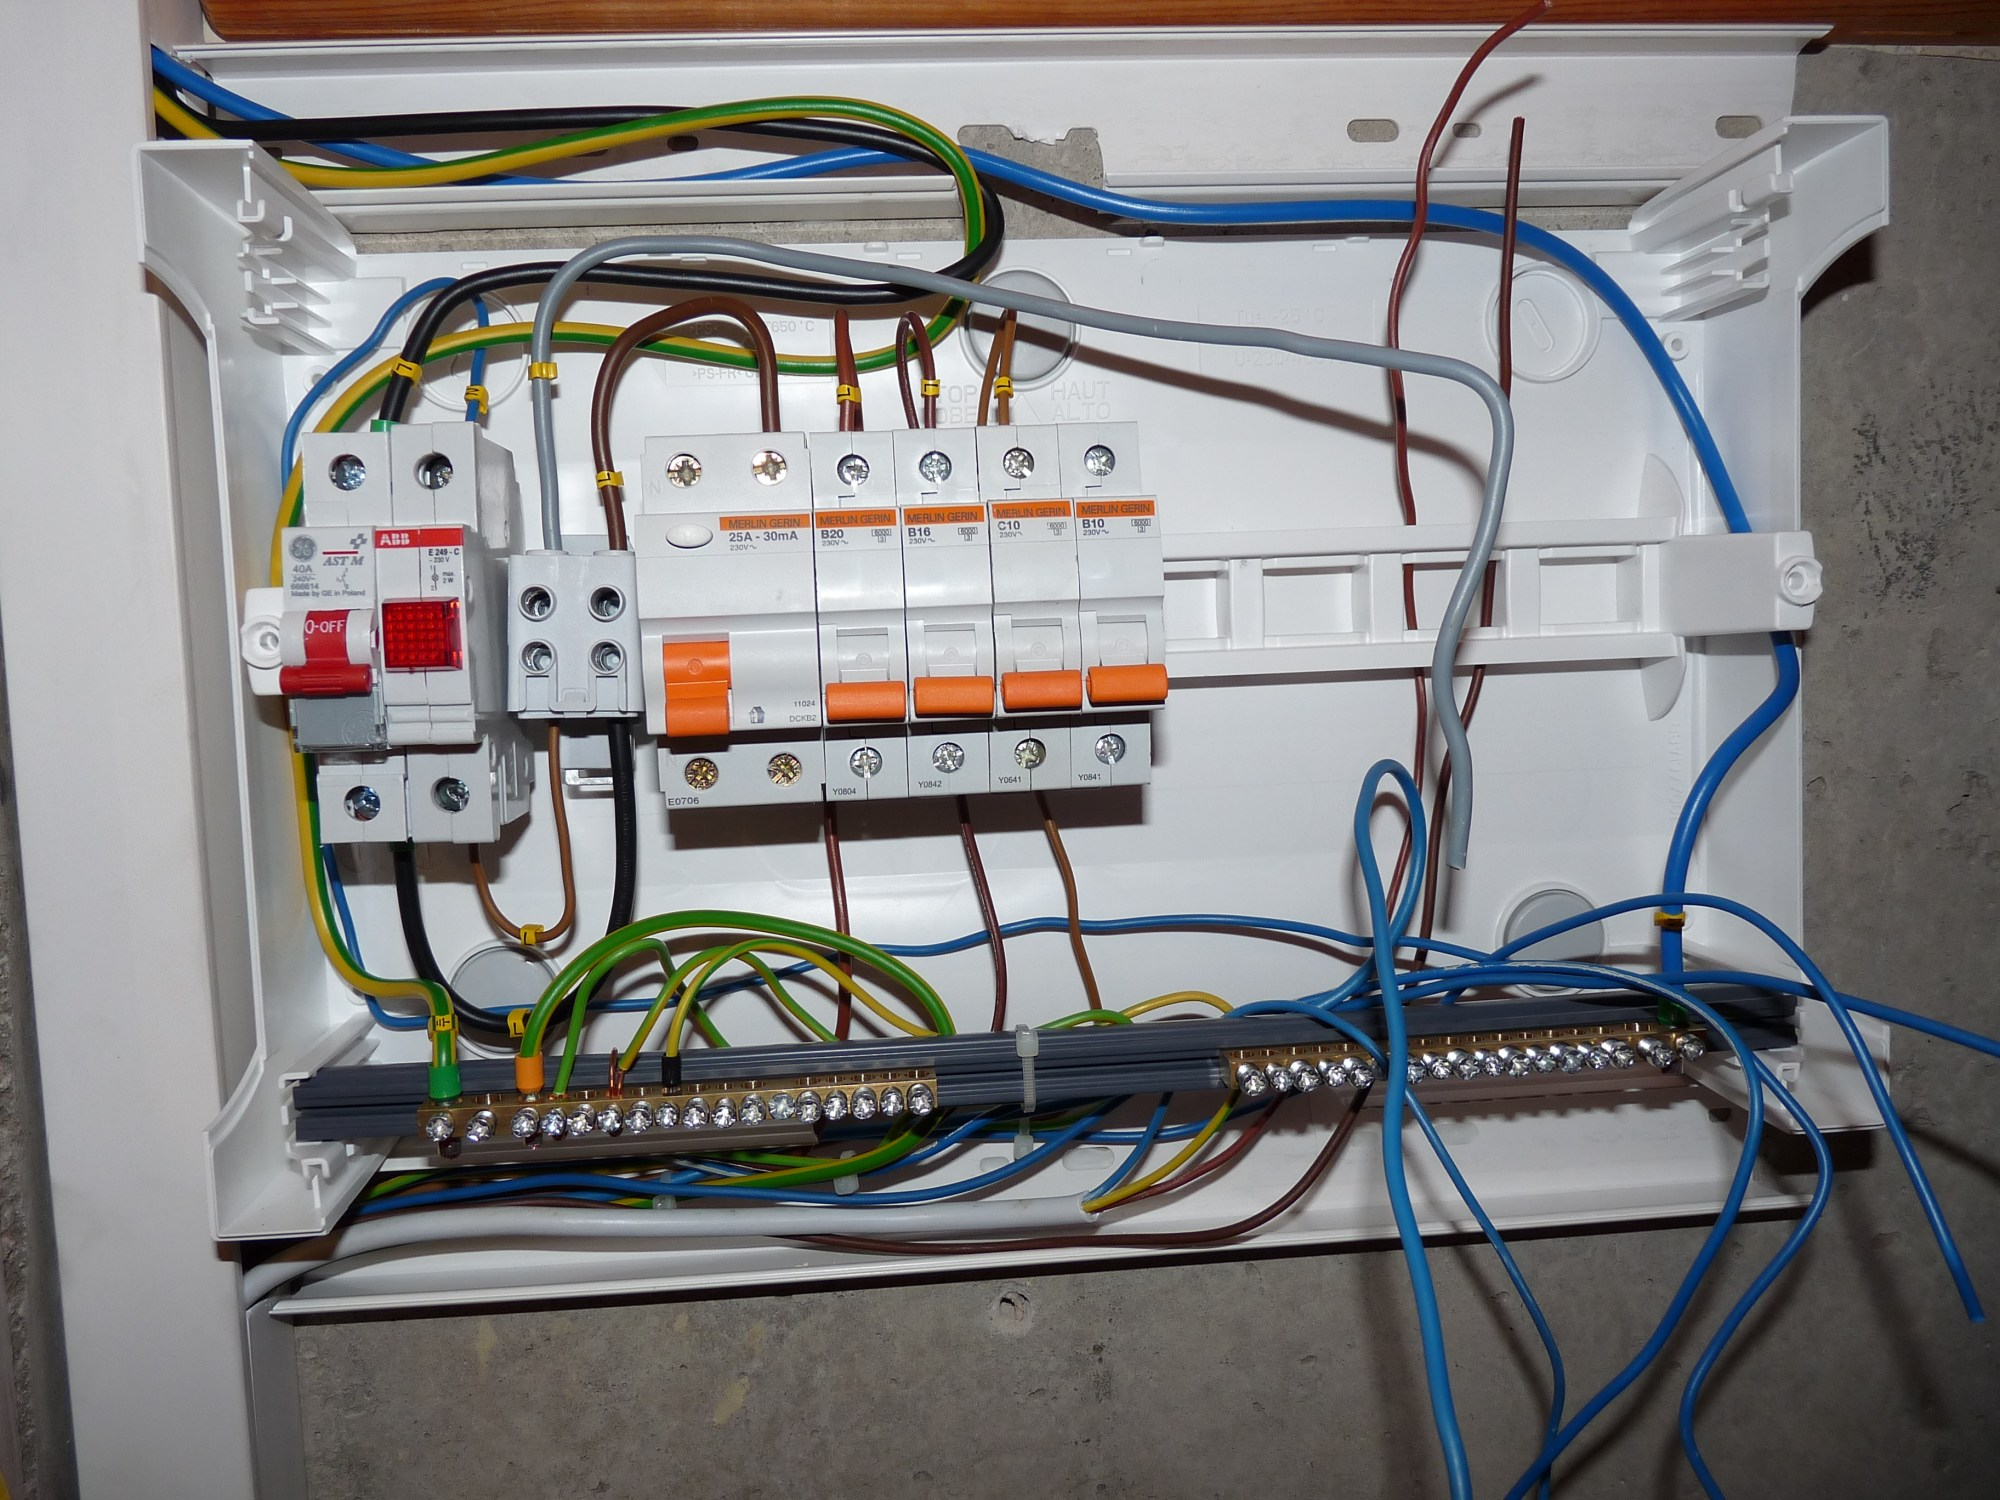 hight resolution of wiring a fuse box uk wiring diagram home vintage fuse box house wiring a fuse box